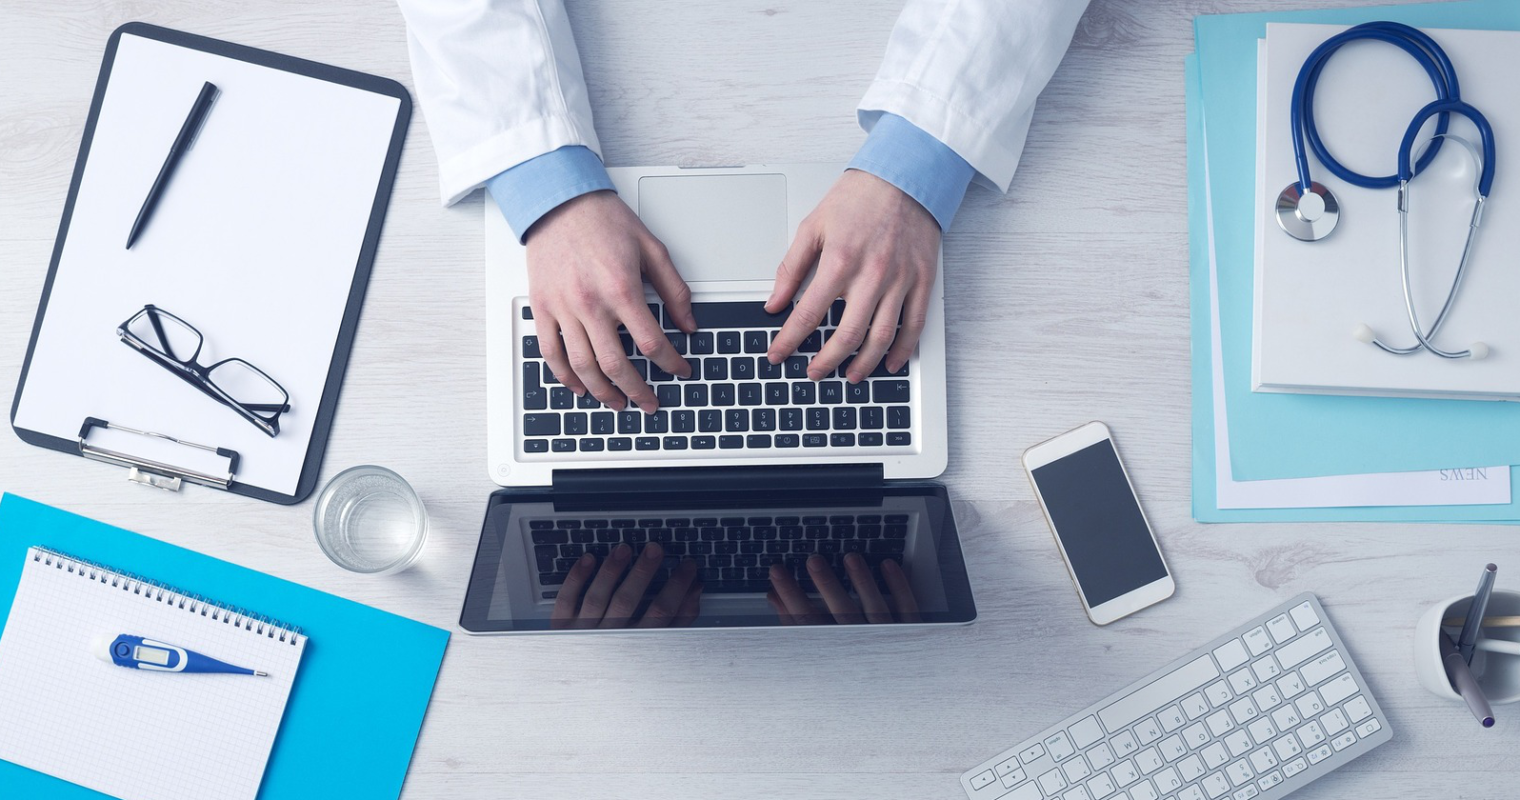 7 Local Search Tips for Health Providers to Take Care of Patients